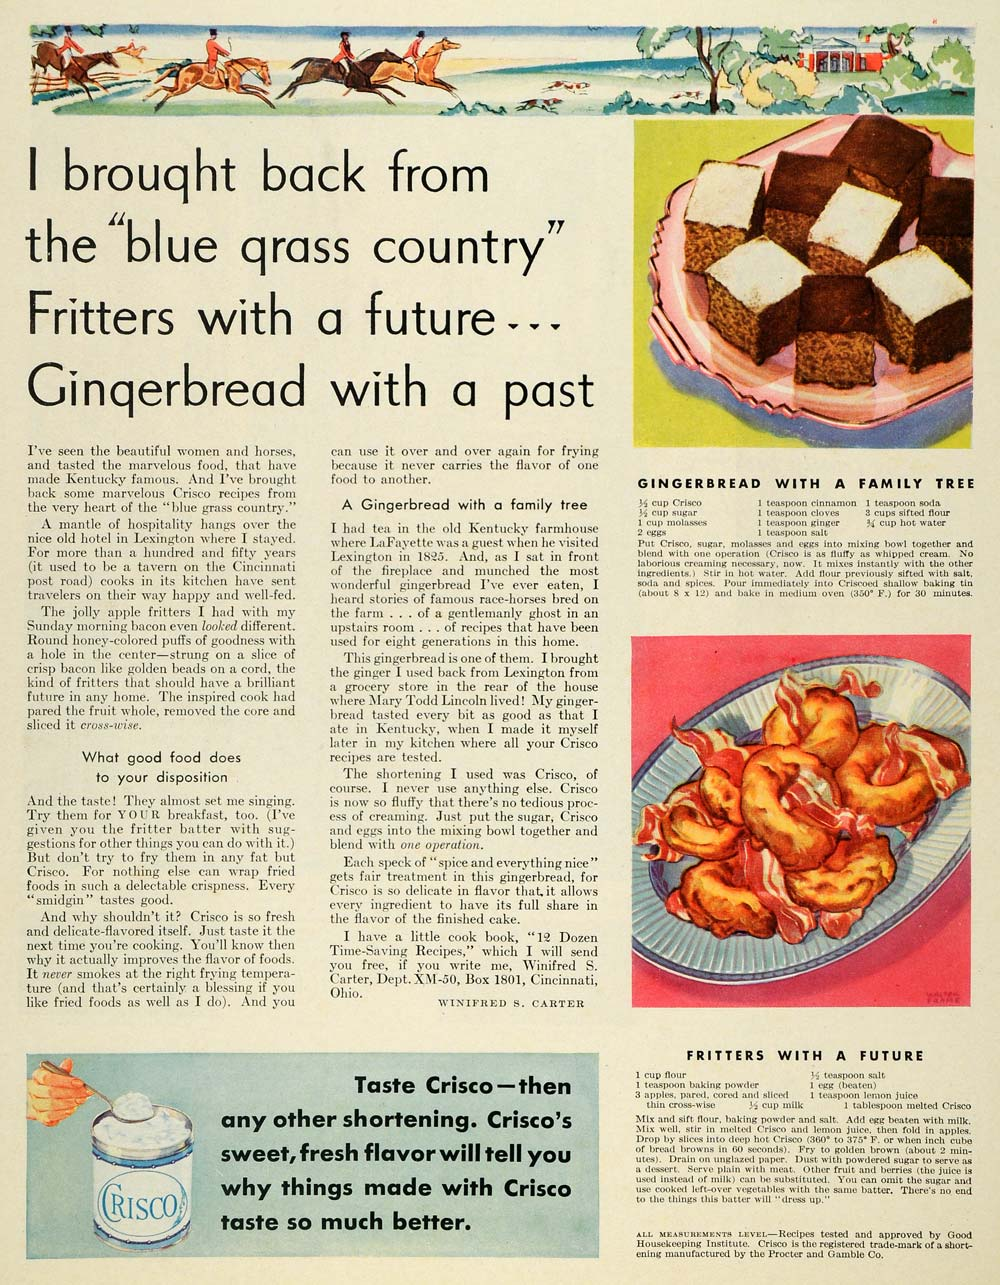 1930 Ad Winifred S Carter Recipes Fritters Crisco Cook - ORIGINAL MCC4